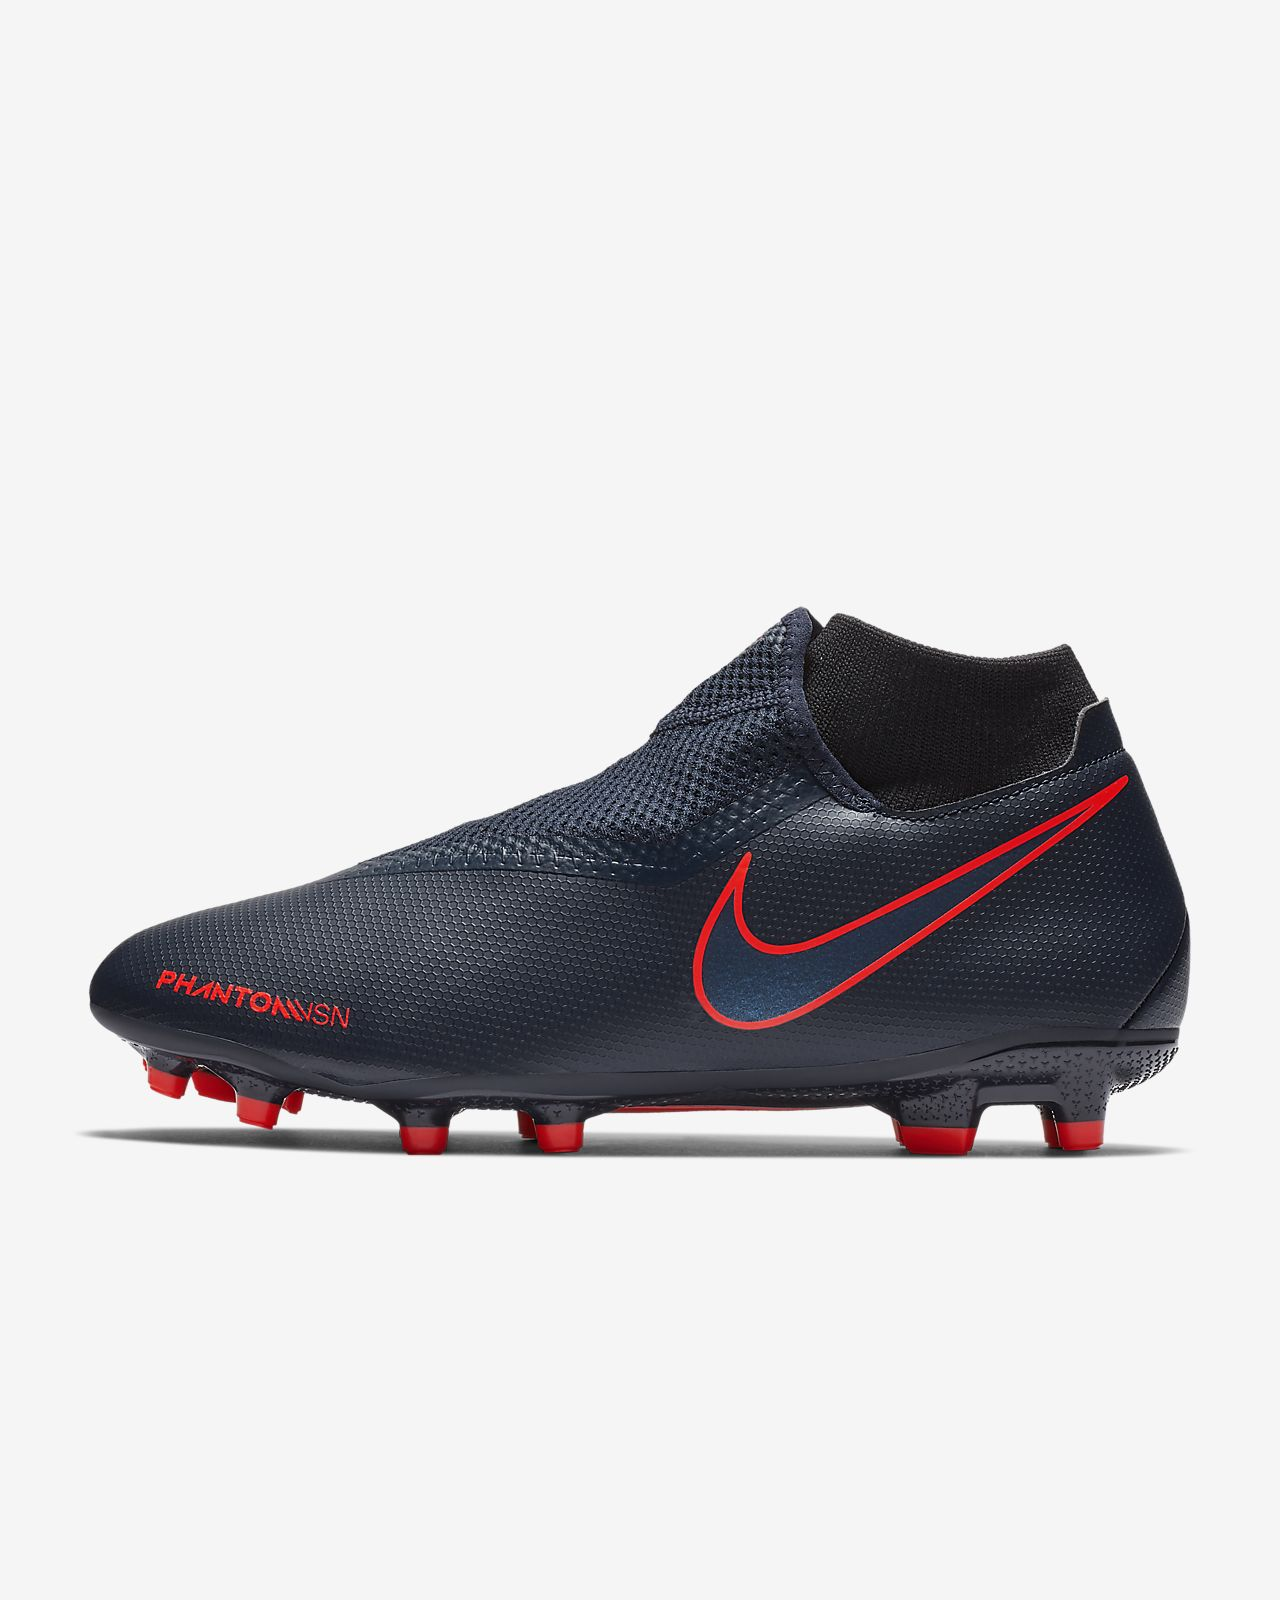 Nike PhantomVSN Academy Dynamic Fit MG Multi-Ground Football Boot ... 9a5f1fcc1